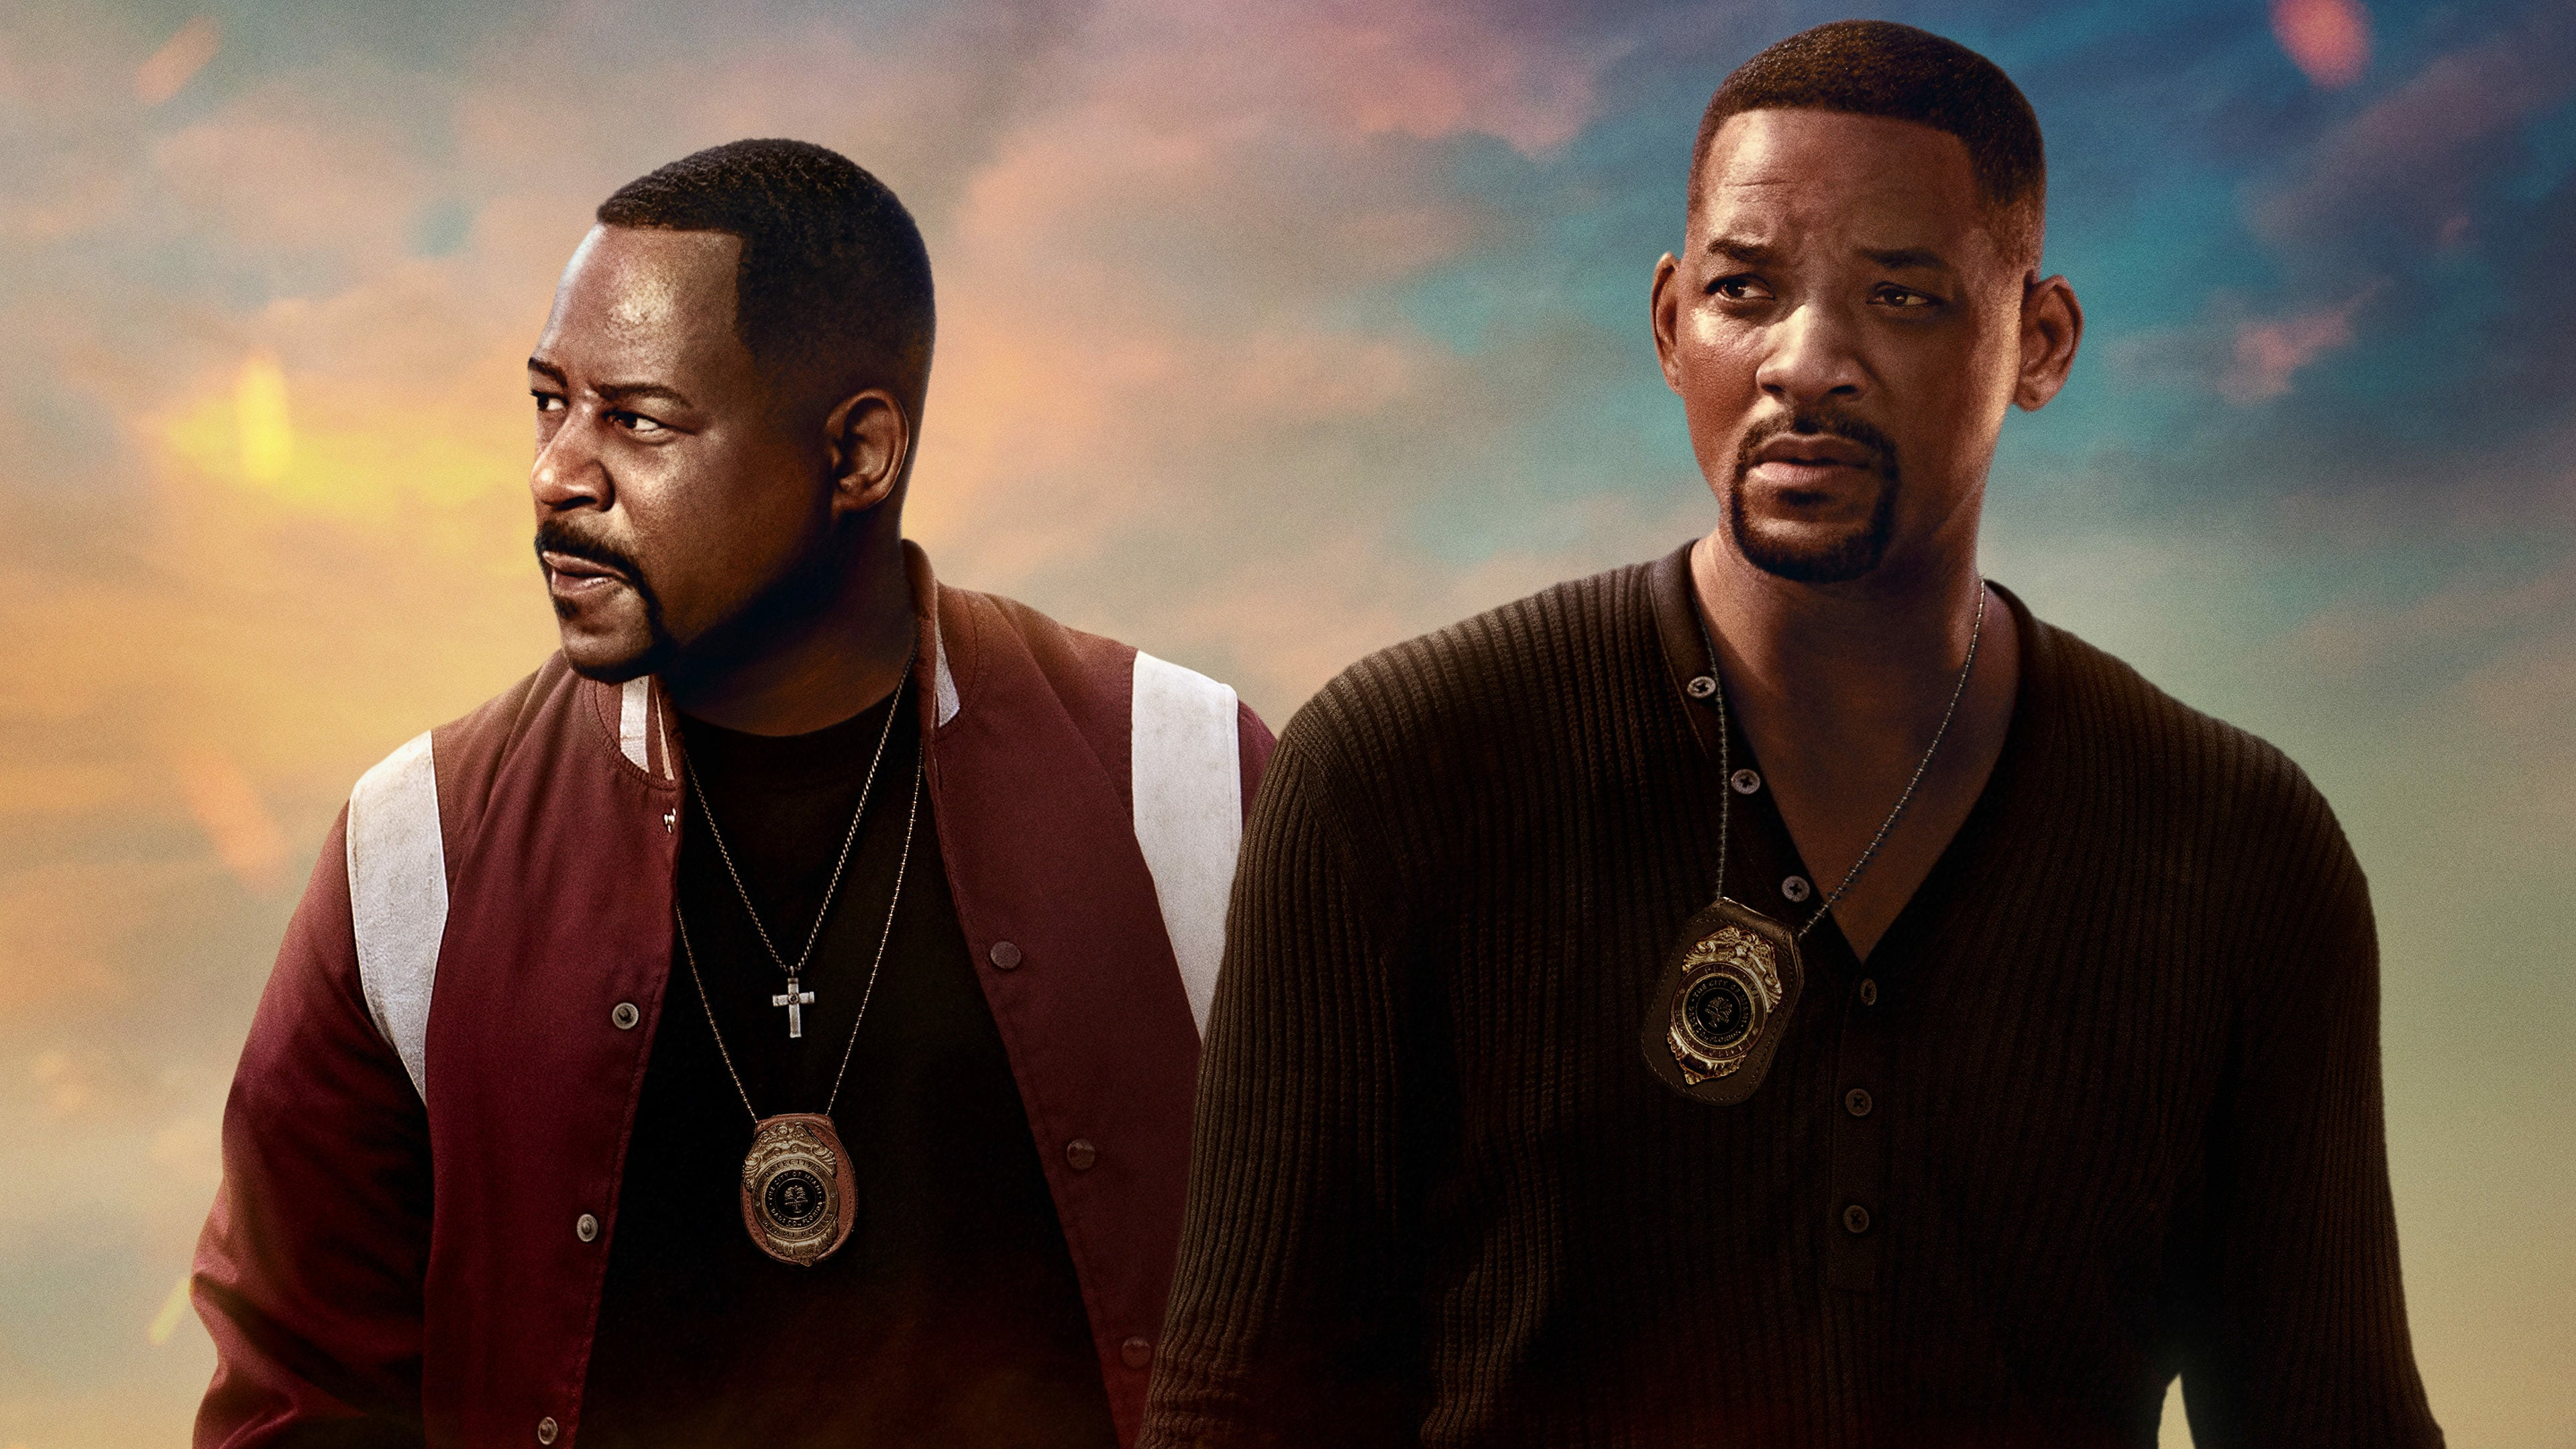 Bad Boys for Life — Dendy Cinemas — February 2020